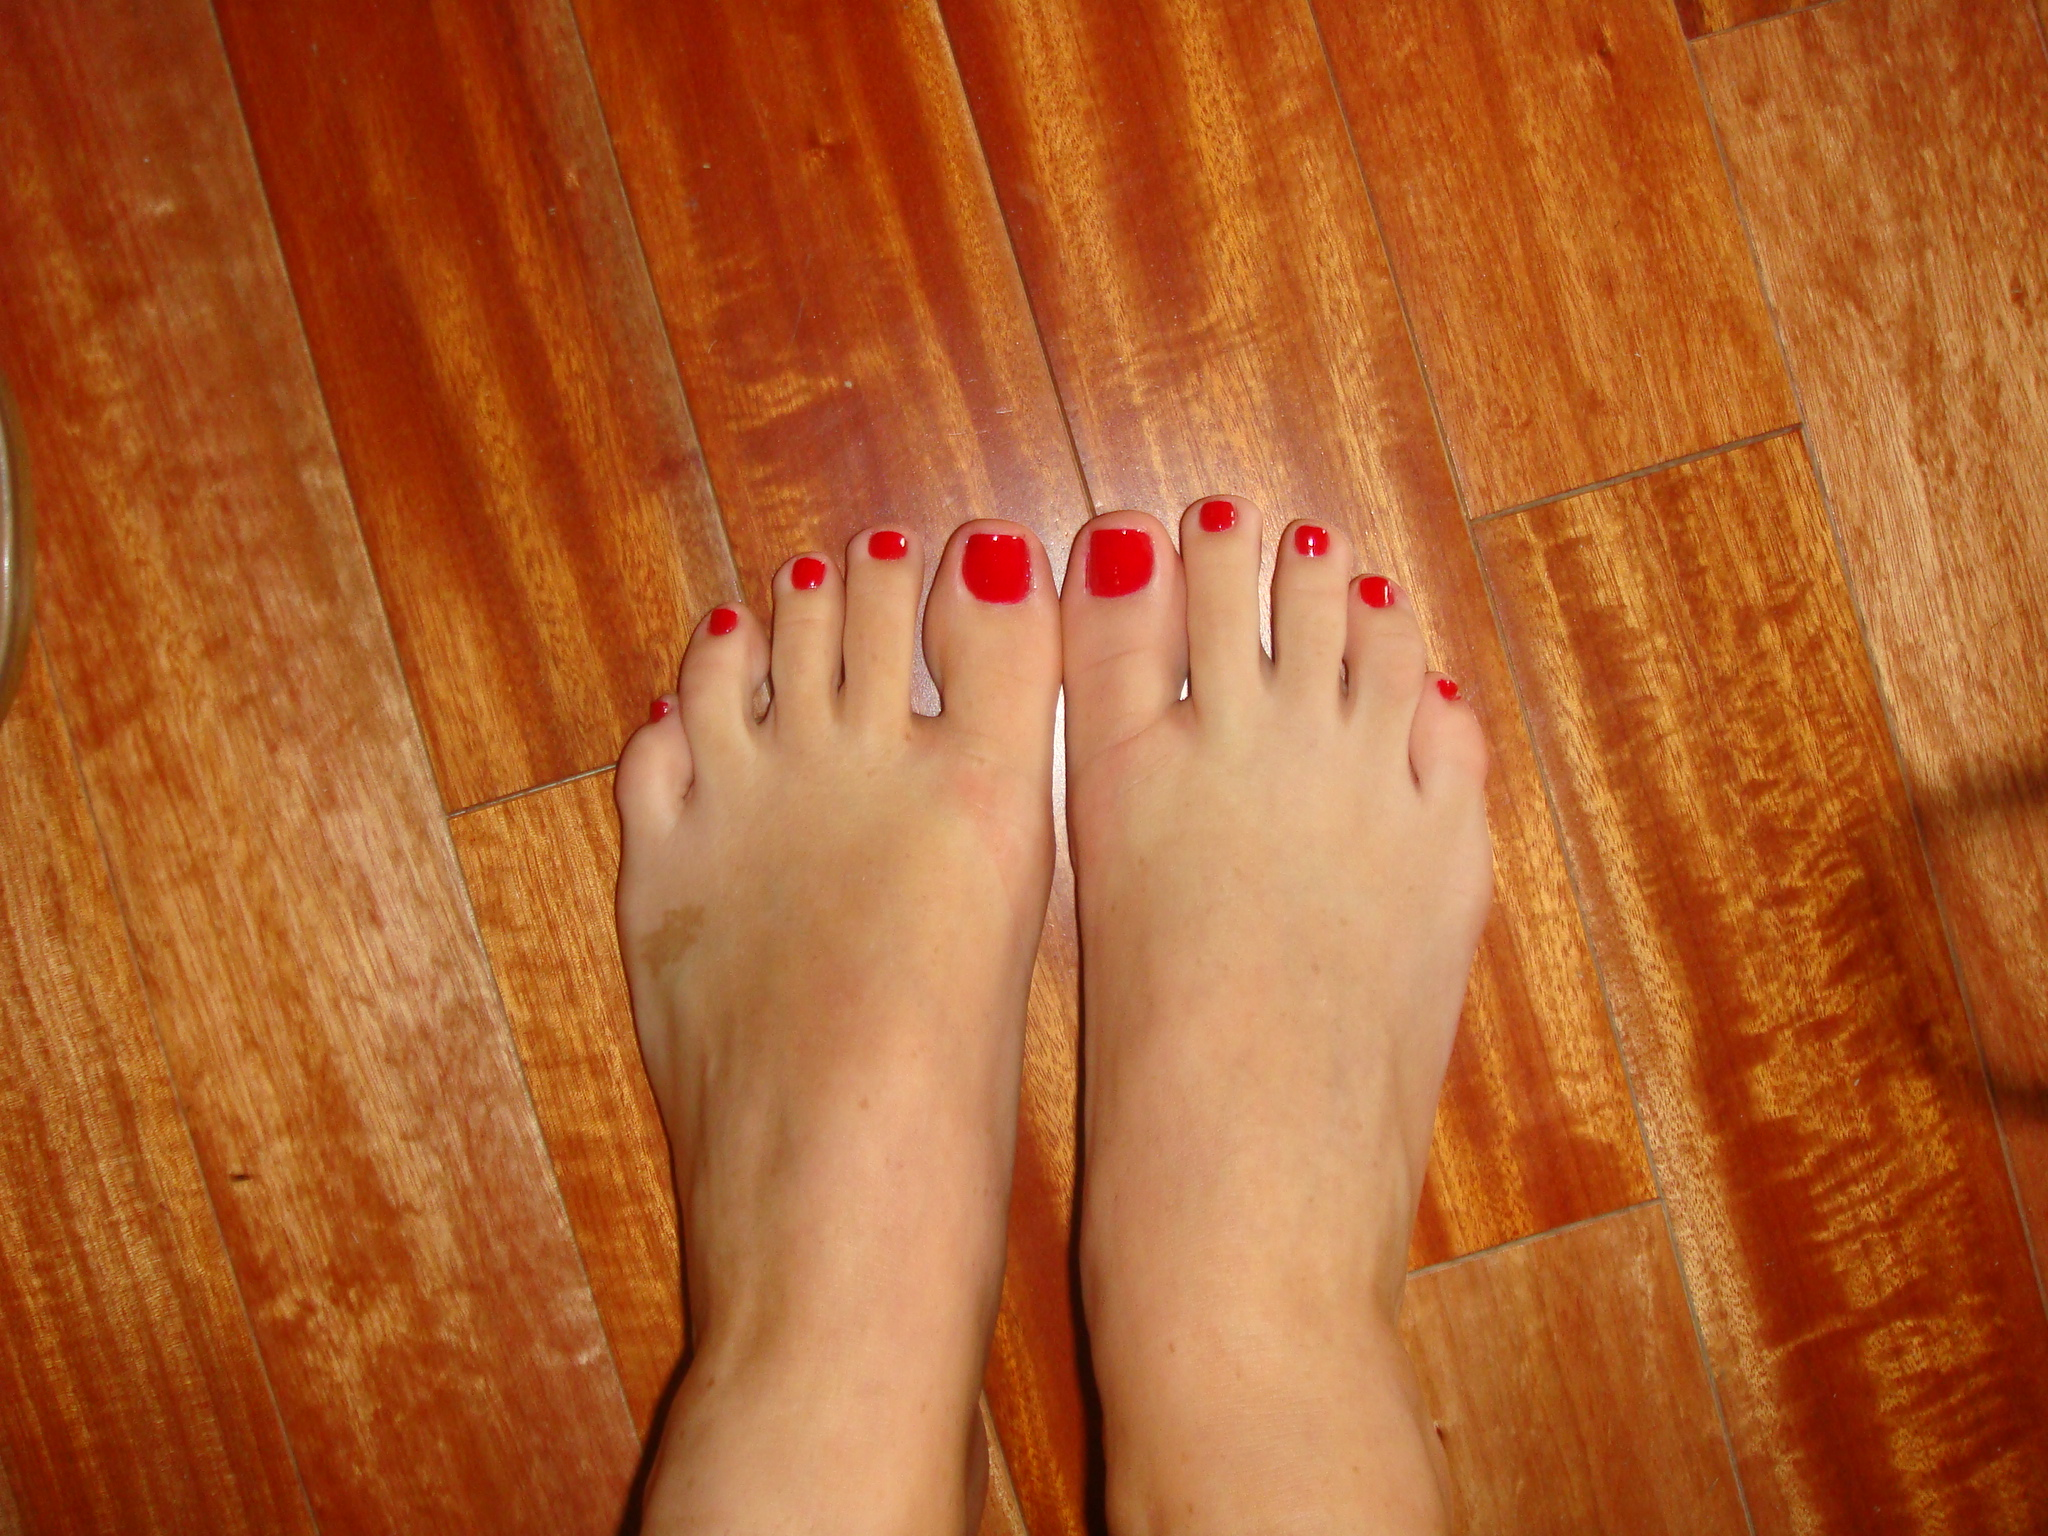 image Long red toenails sole view